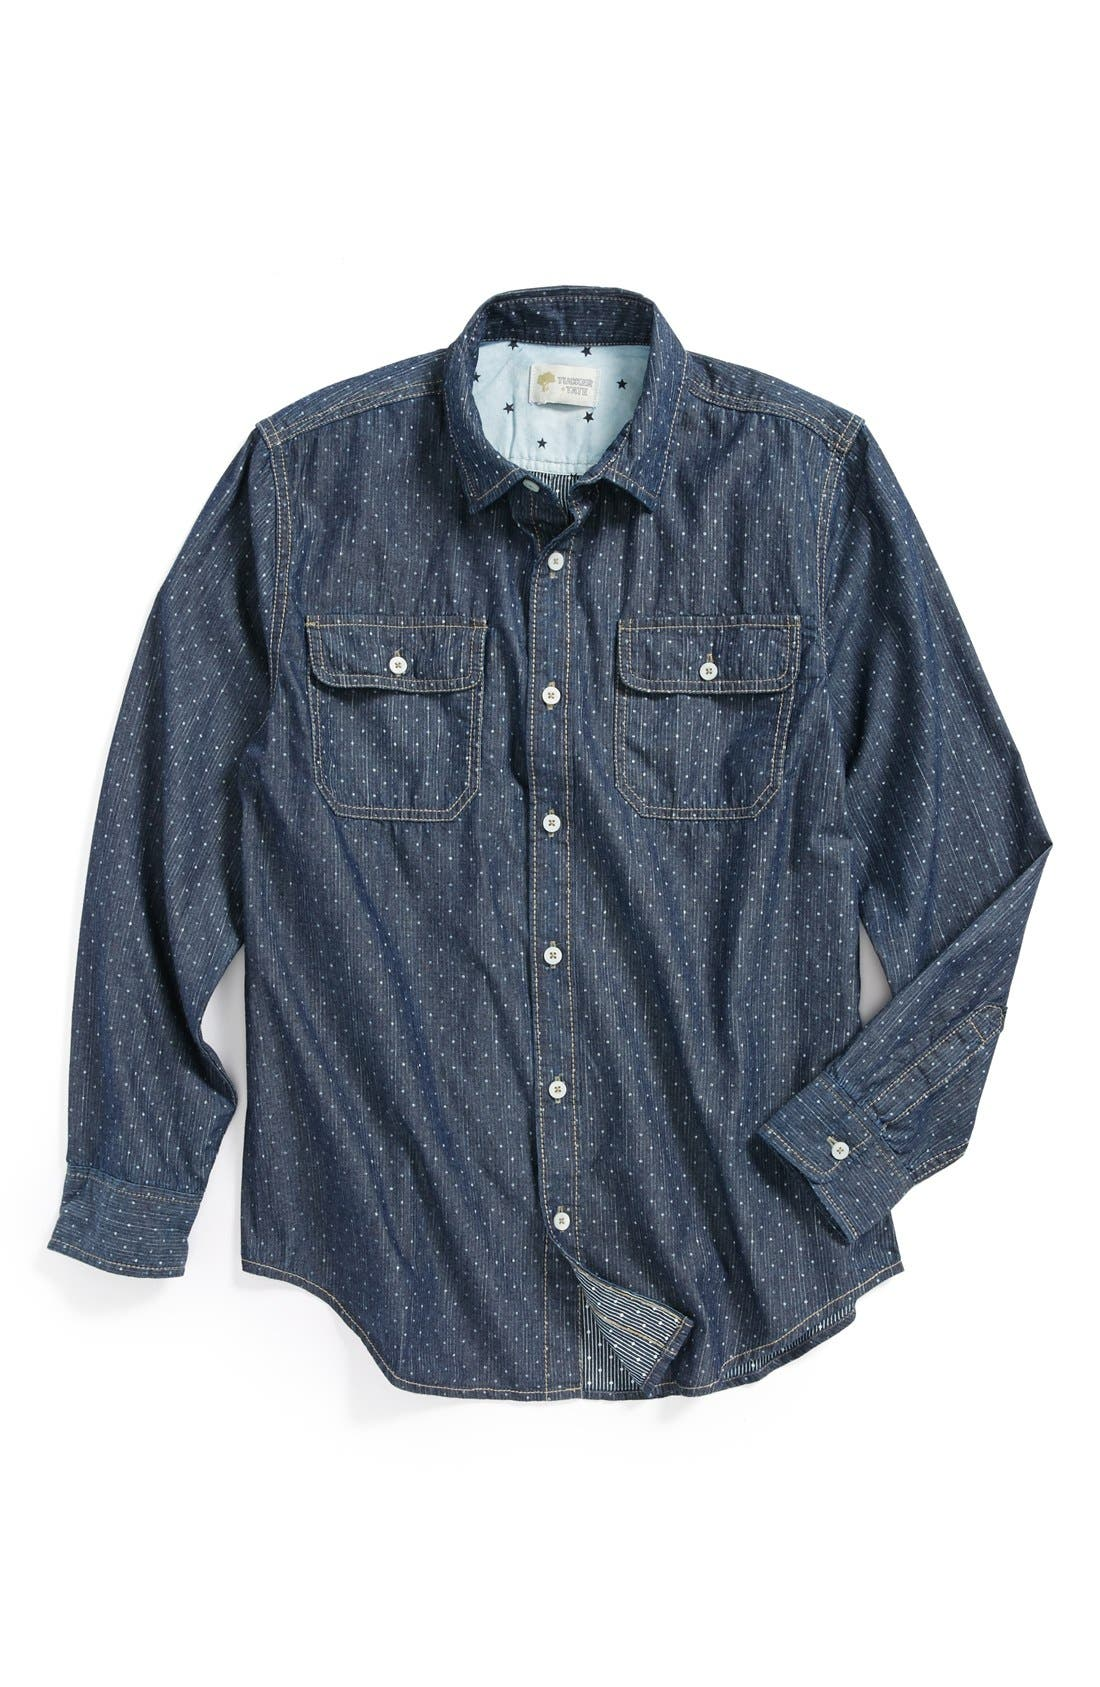 Alternate Image 1 Selected - Tucker + Tate 'Anker' Chambray Sport Shirt (Big Boys)